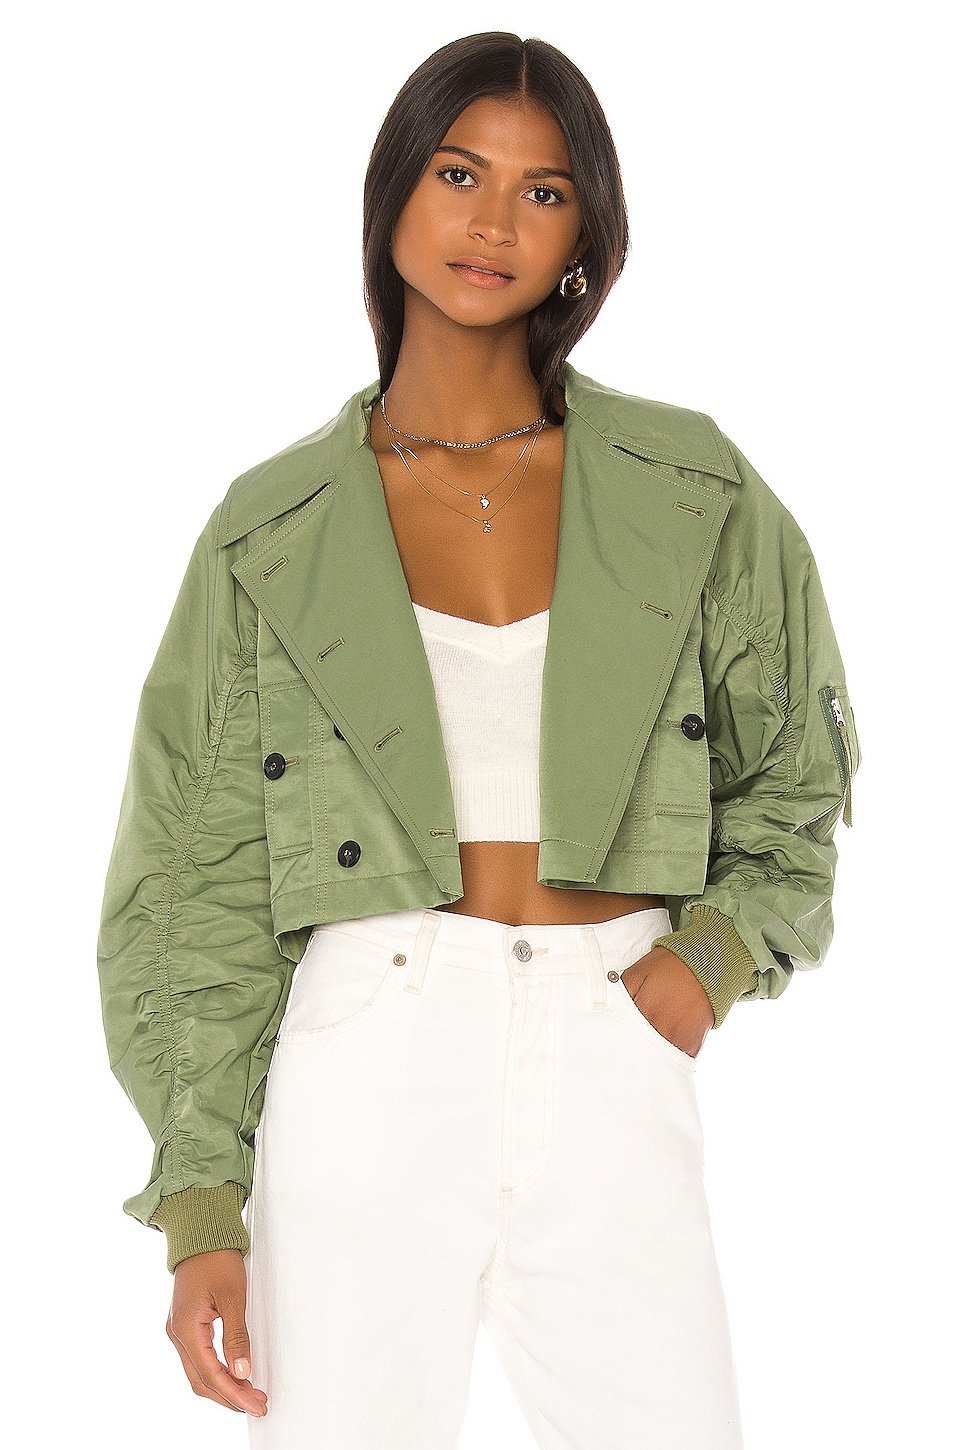 L'Academie The Kari Jacket in Dusty Jade